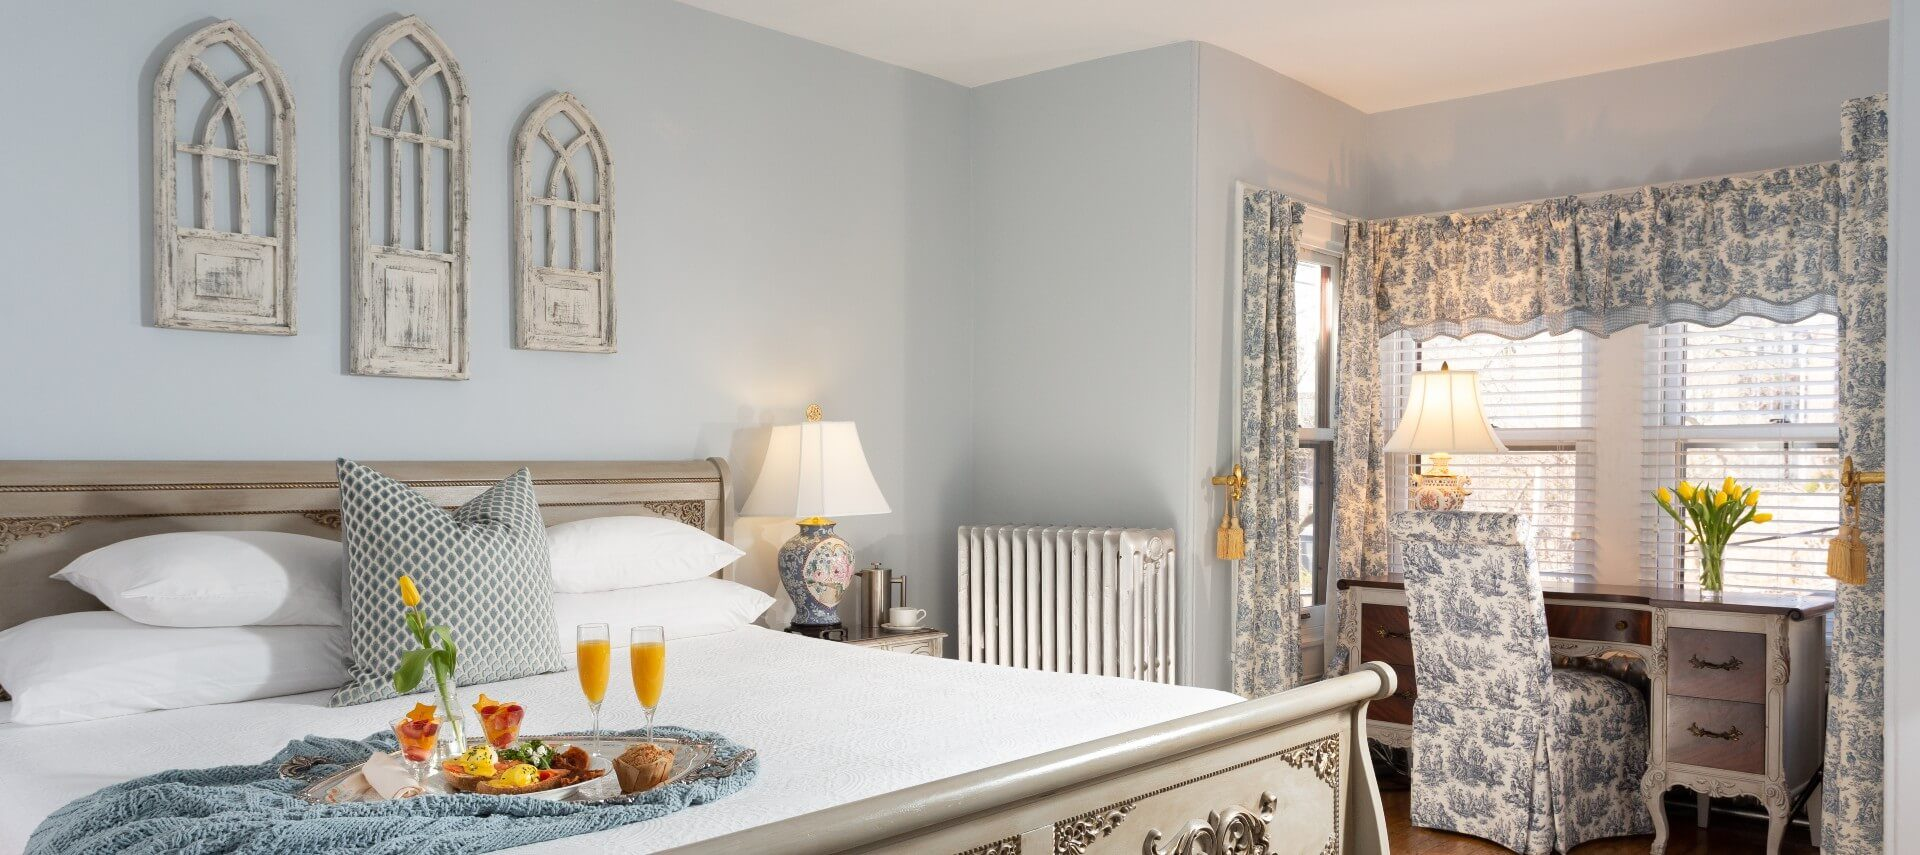 Elegant guest suite with king bed and sitting chair and table in nook with windows